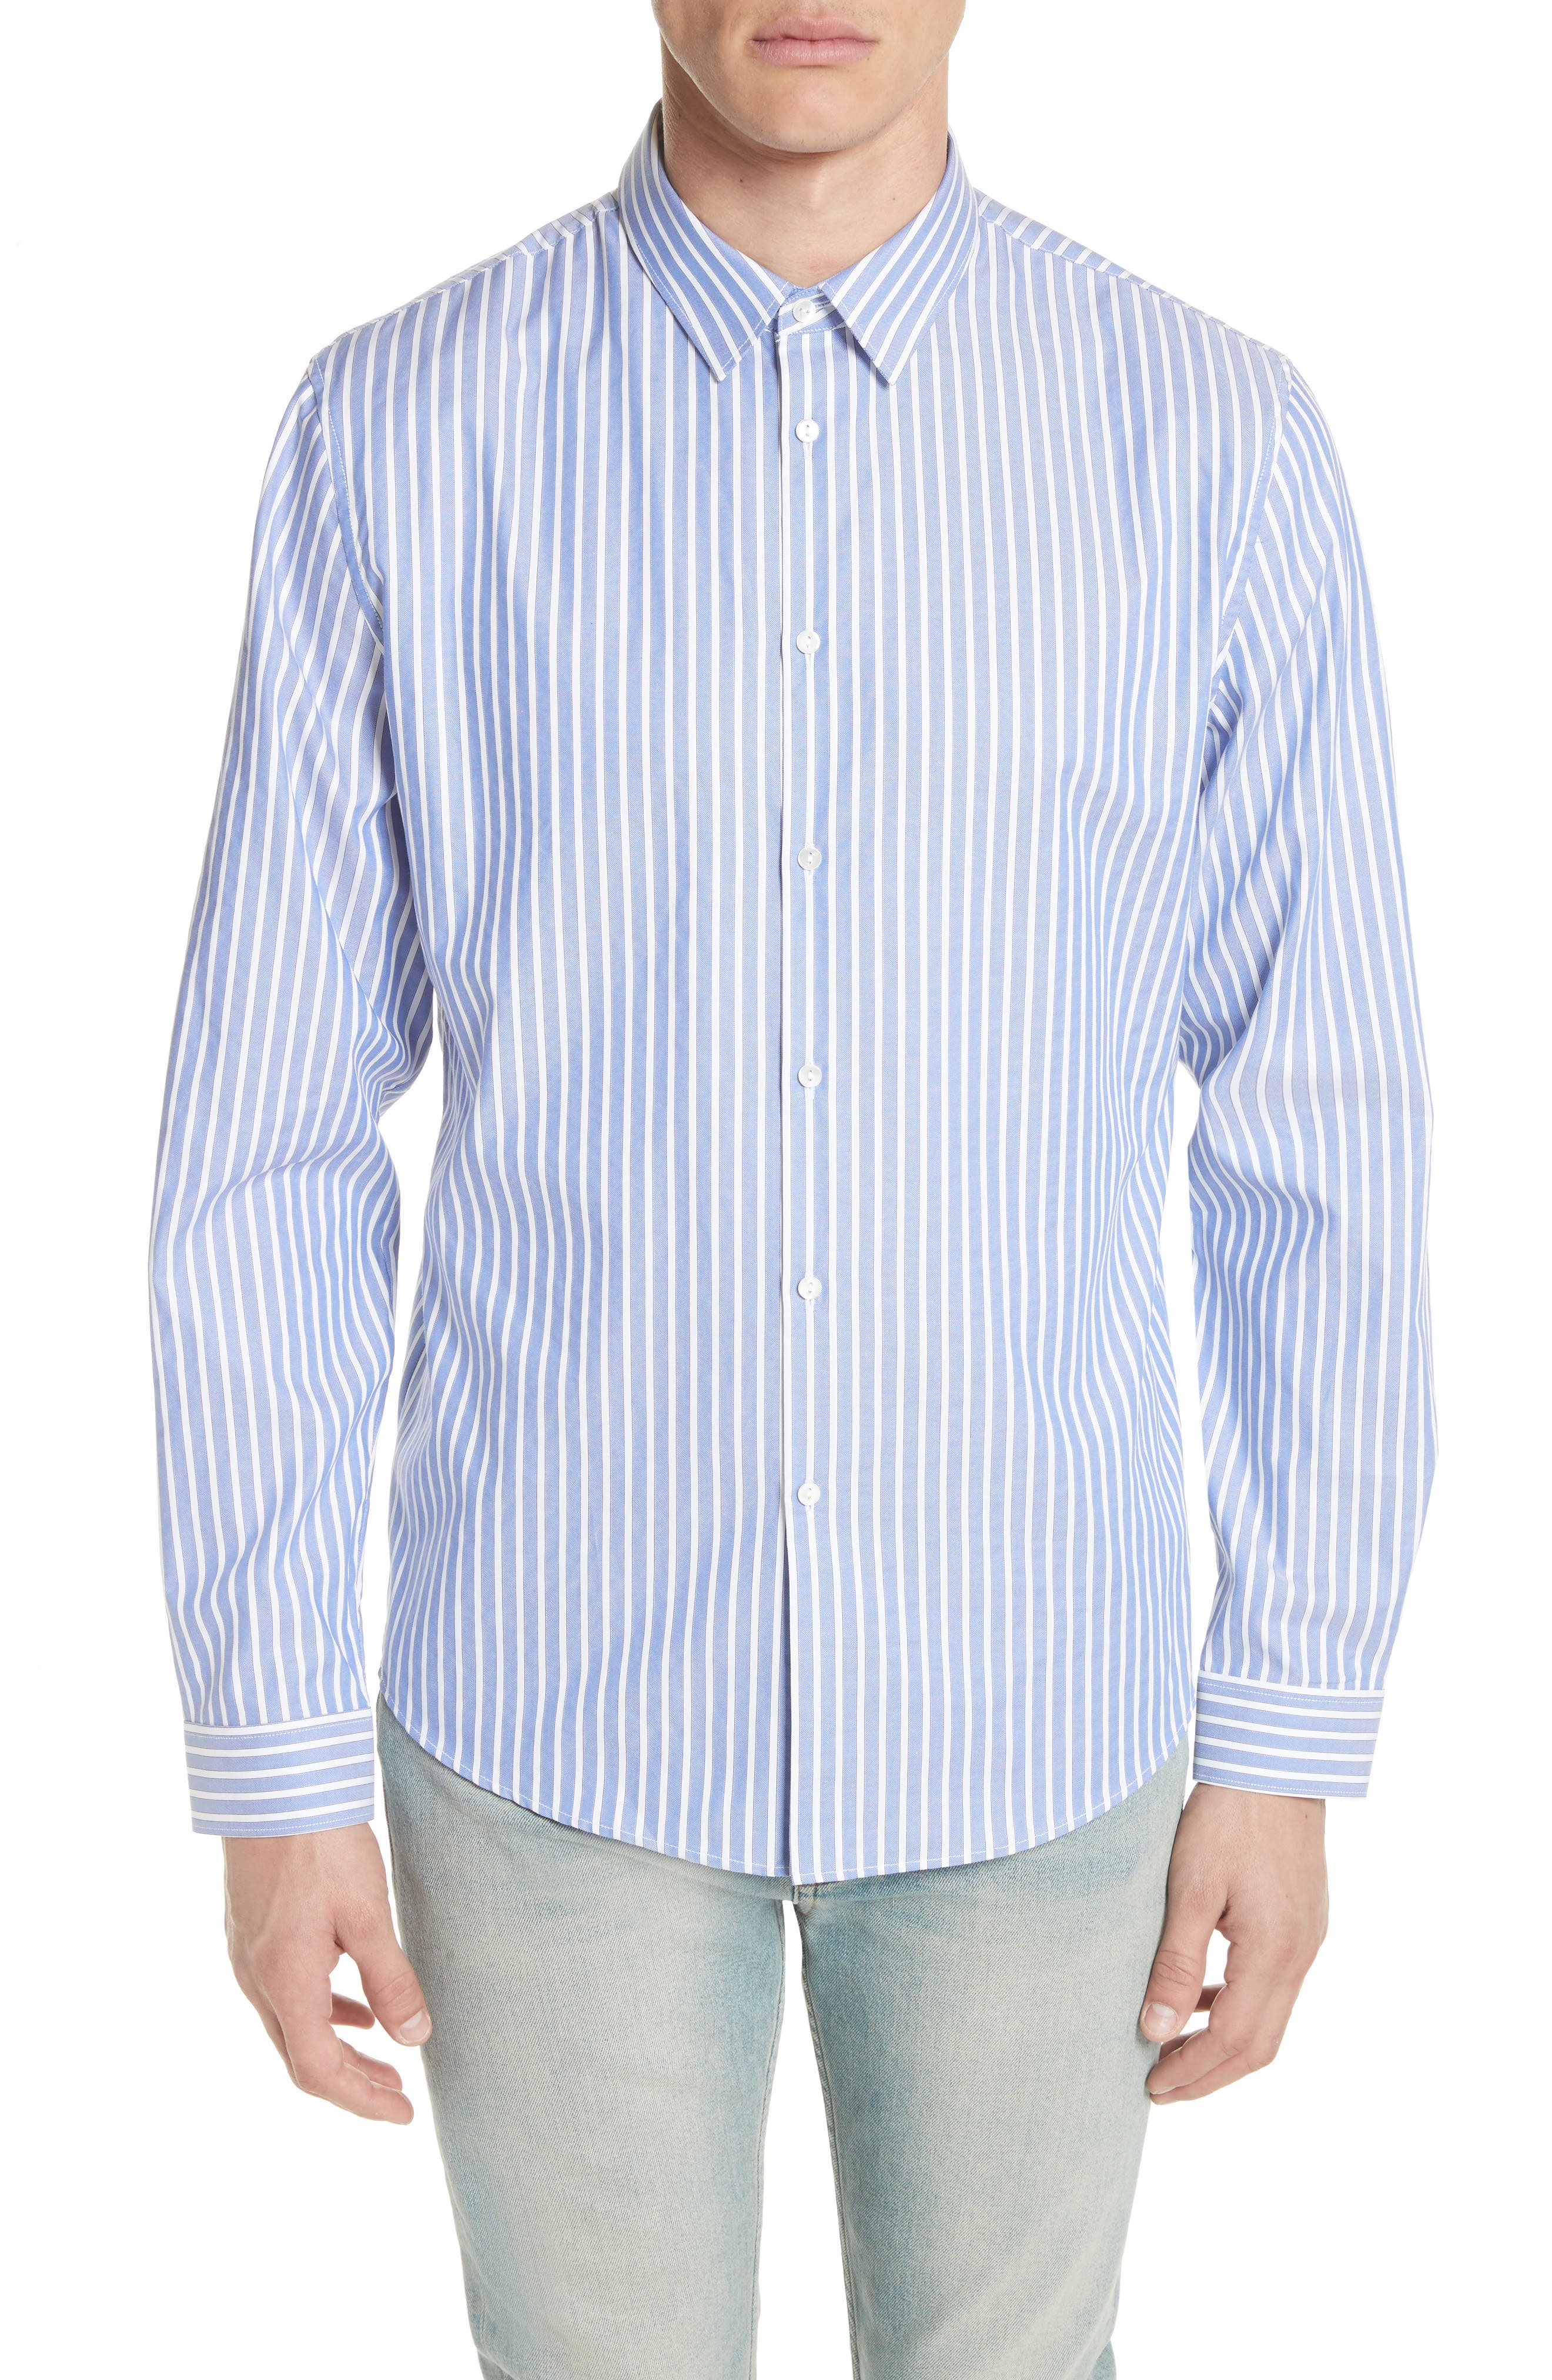 Gucci Bee Embroidered Stripe Dress Shirt